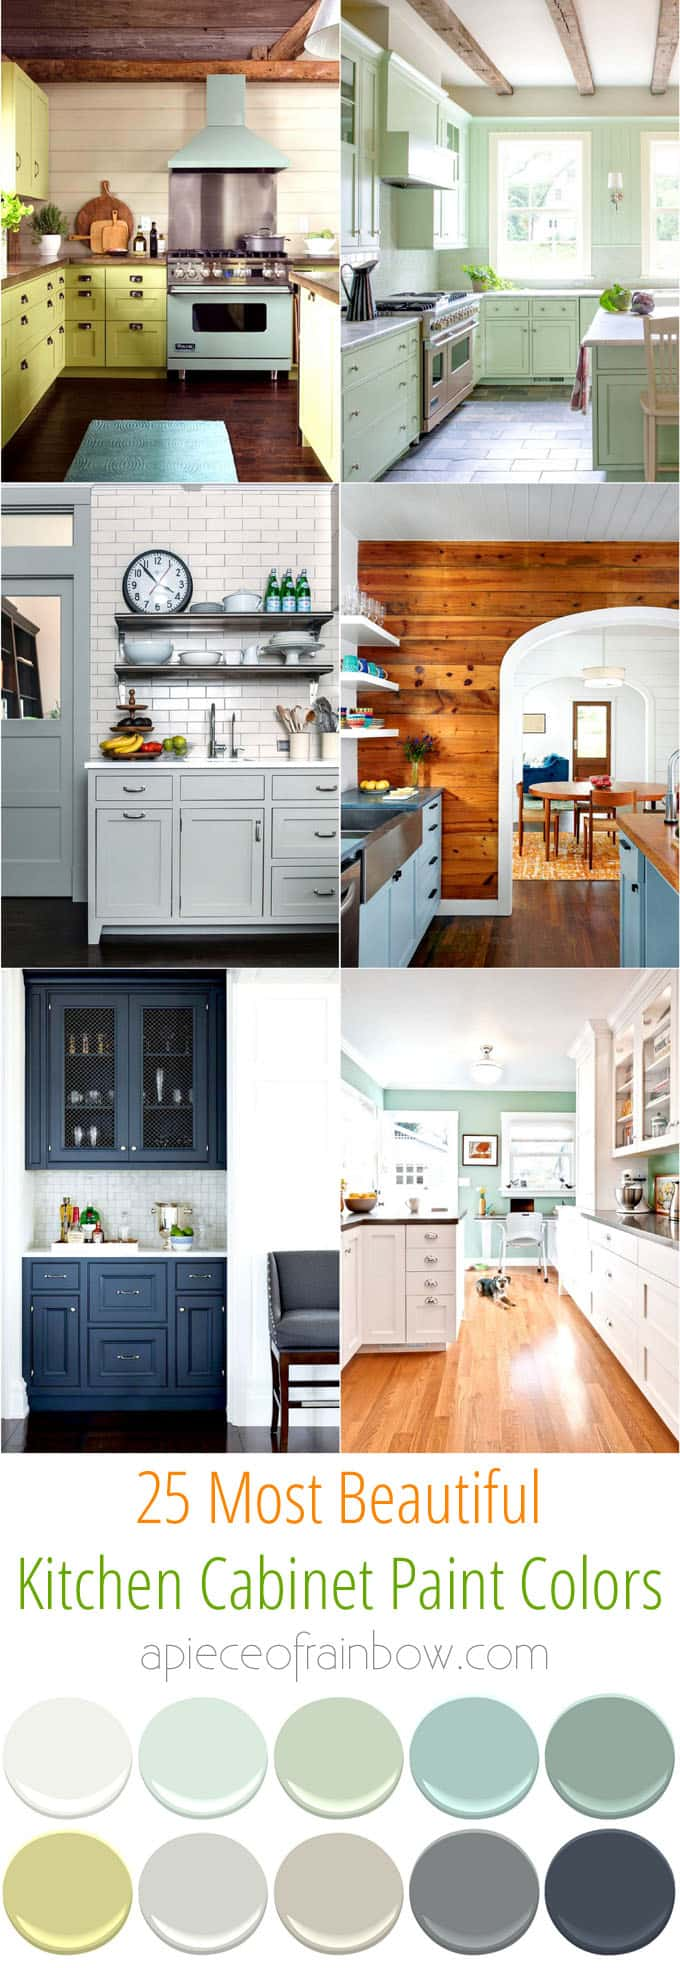 25 Gorgeous Kitchen Cabinet Colors & Paint Color Combos - A Piece Of on refacing kitchen cabinets, kitchen flooring, white kitchen cabinets, furniture colors, refinishing kitchen cabinets, kitchen base cabinets, how to install kitchen cabinets, kitchen design, how to paint kitchen cabinets, kitchen backsplash, cottage kitchen colors, kitchen color combinations, kitchen ideas, living room colors, kitchen pantry cabinet, rustic kitchen cabinets, kitchen color selector, black kitchen cabinets, unfinished kitchen cabinets, kitchen pantry cabinets, staining kitchen cabinets, green kitchen colors, ceiling colors, choosing kitchen cabinets, kitchen color palettes, resurfacing kitchen cabinets, kitchen cabinets product, kitchen remodel, kitchen wall cabinets, ideas for painting kitchen cabinets, kitchen island, kitchen cabinet design ideas, painting kitchen cabinets, kitchen cabinet design software, glazing kitchen cabinets, kitchen wall colors, wood colors,